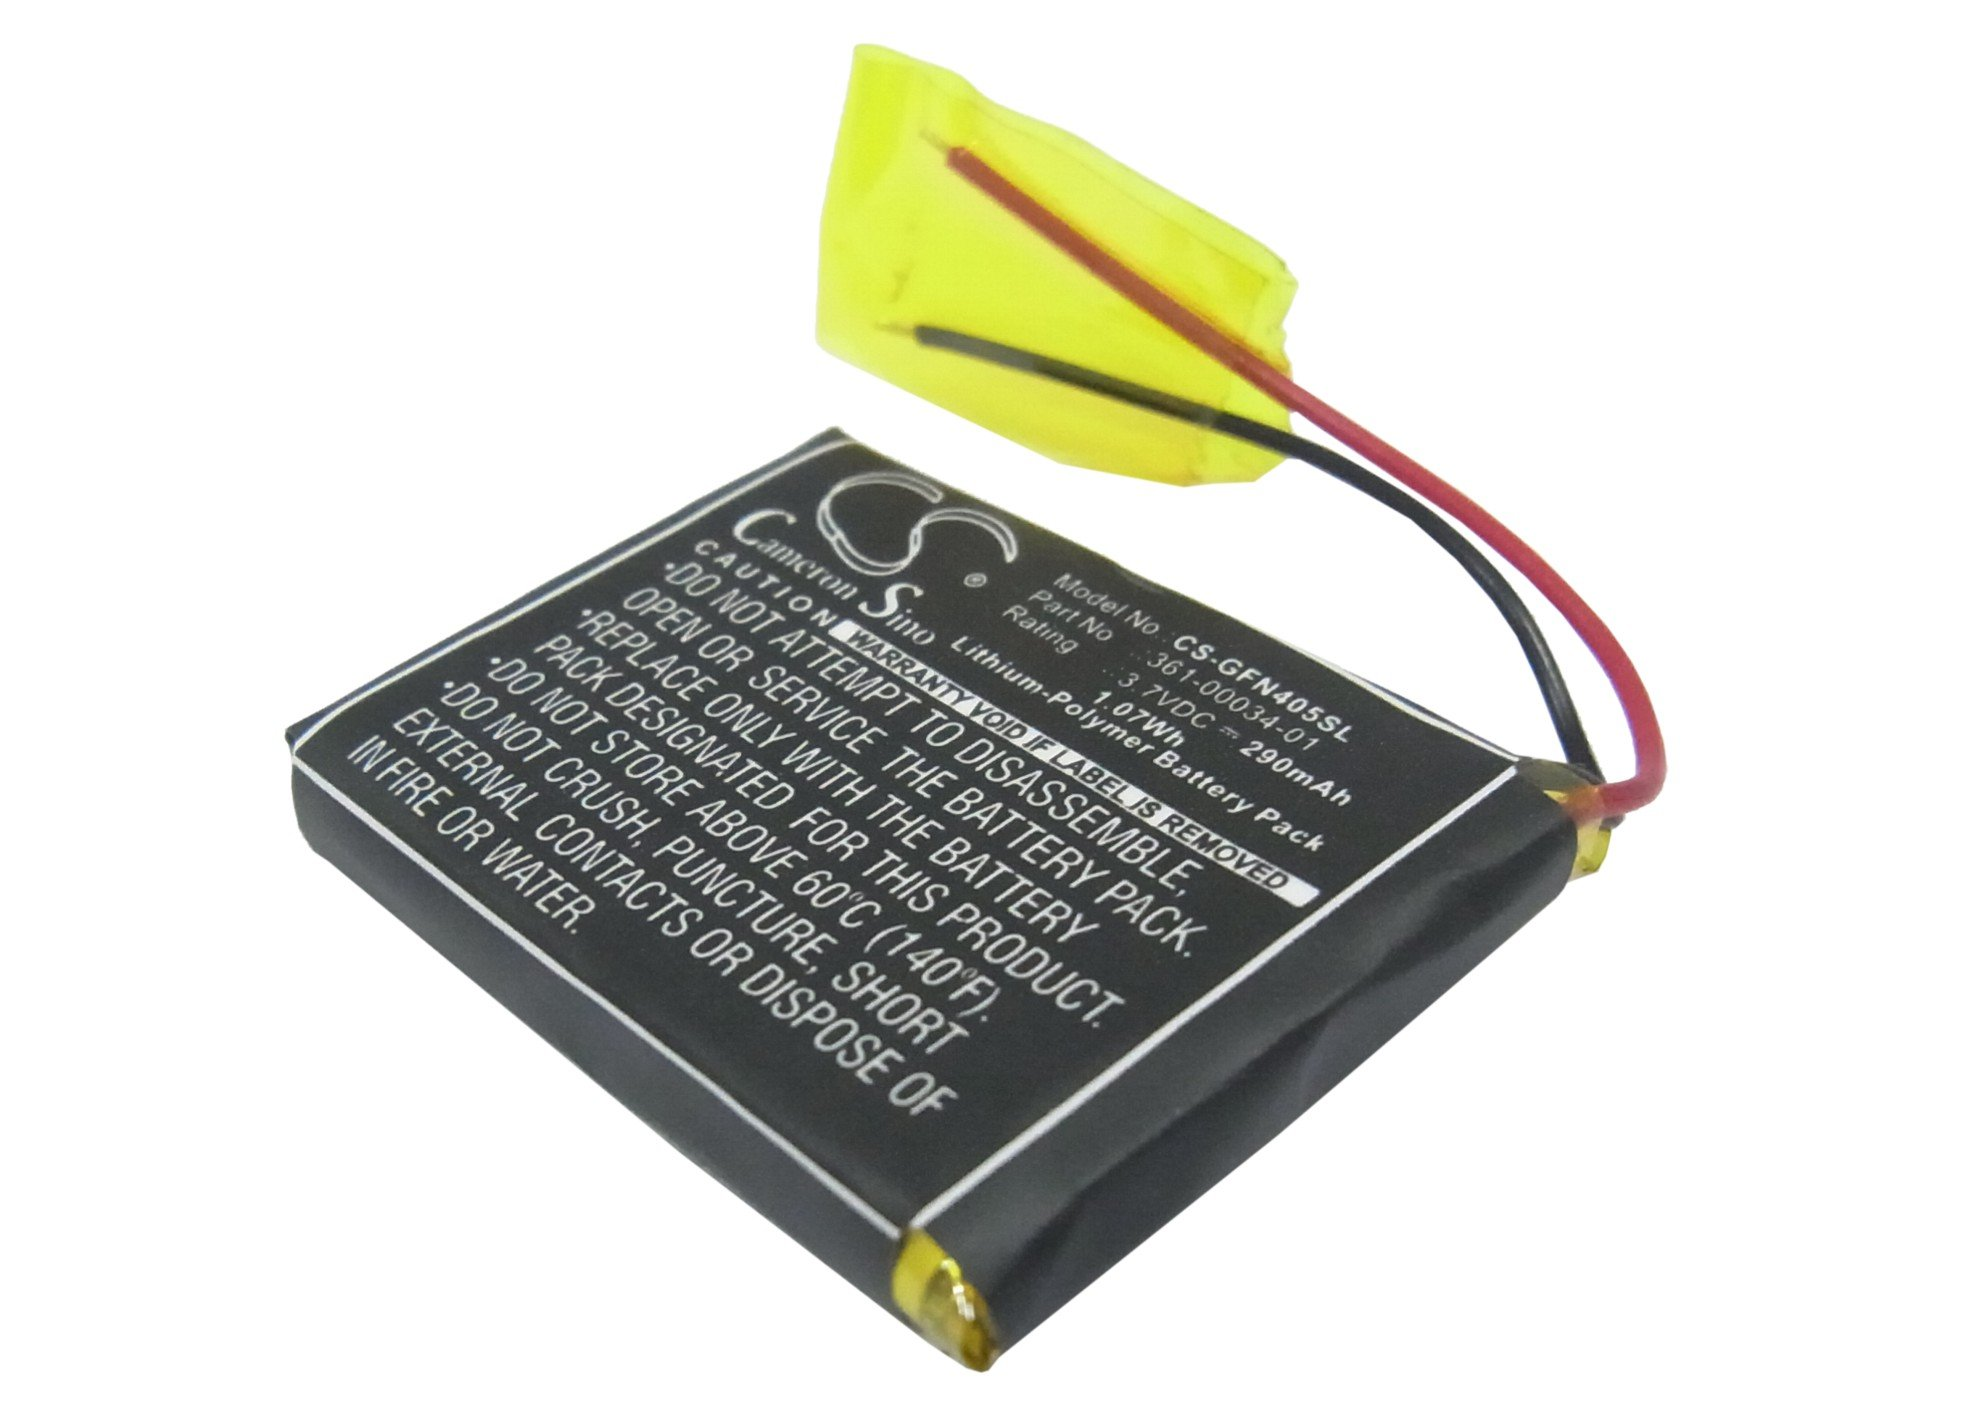 Cameron Sino 290mAh / 1.07Wh Battery Compatible With Garmin Foretrex 405, Foretrex 405cx, Foretrex 401, Fenix 3